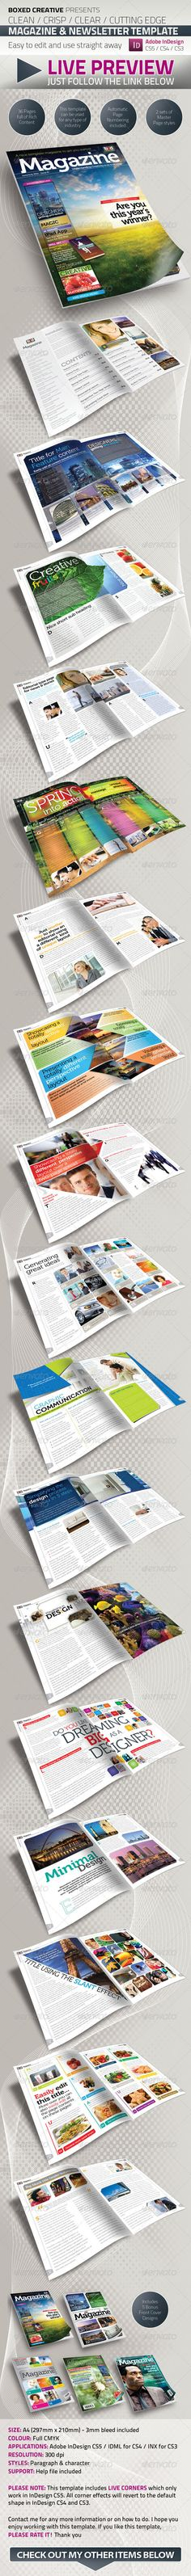 36 Page Magazine / Newsletter Template - Magazines Print Templates